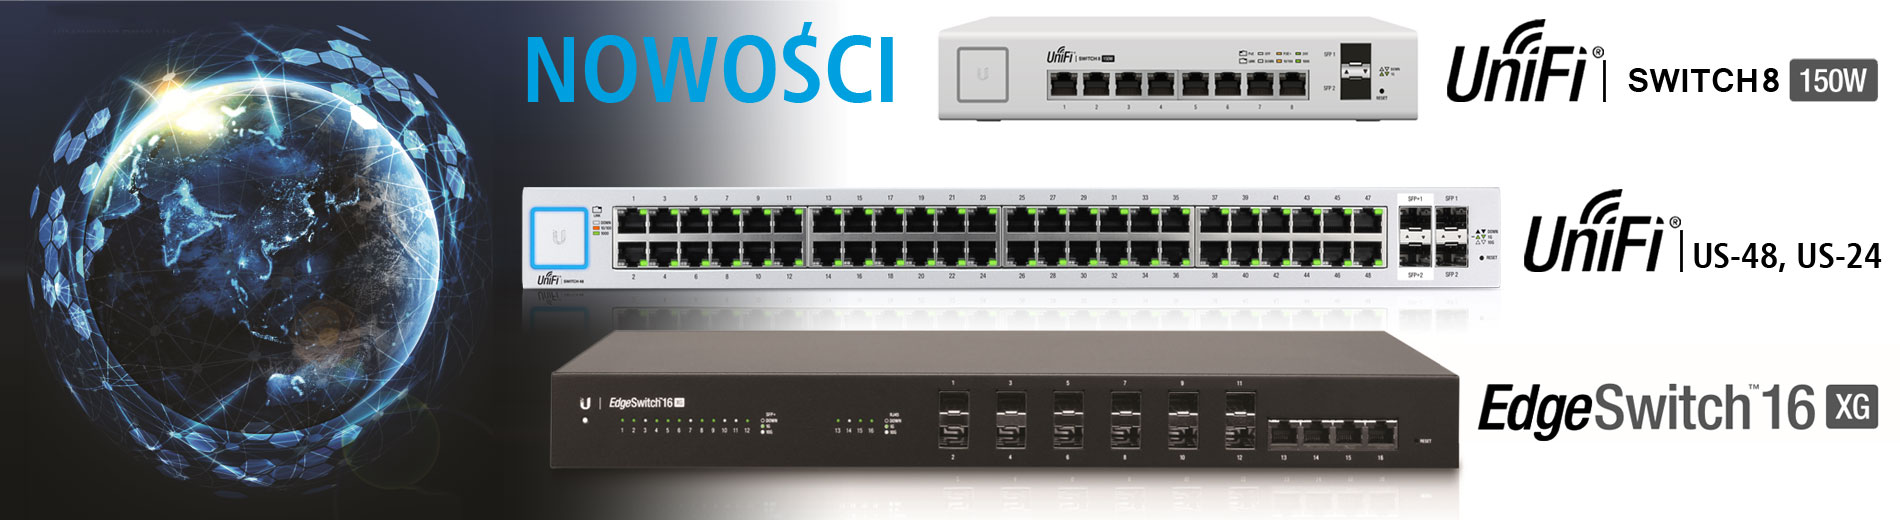 Ubiquiti switch